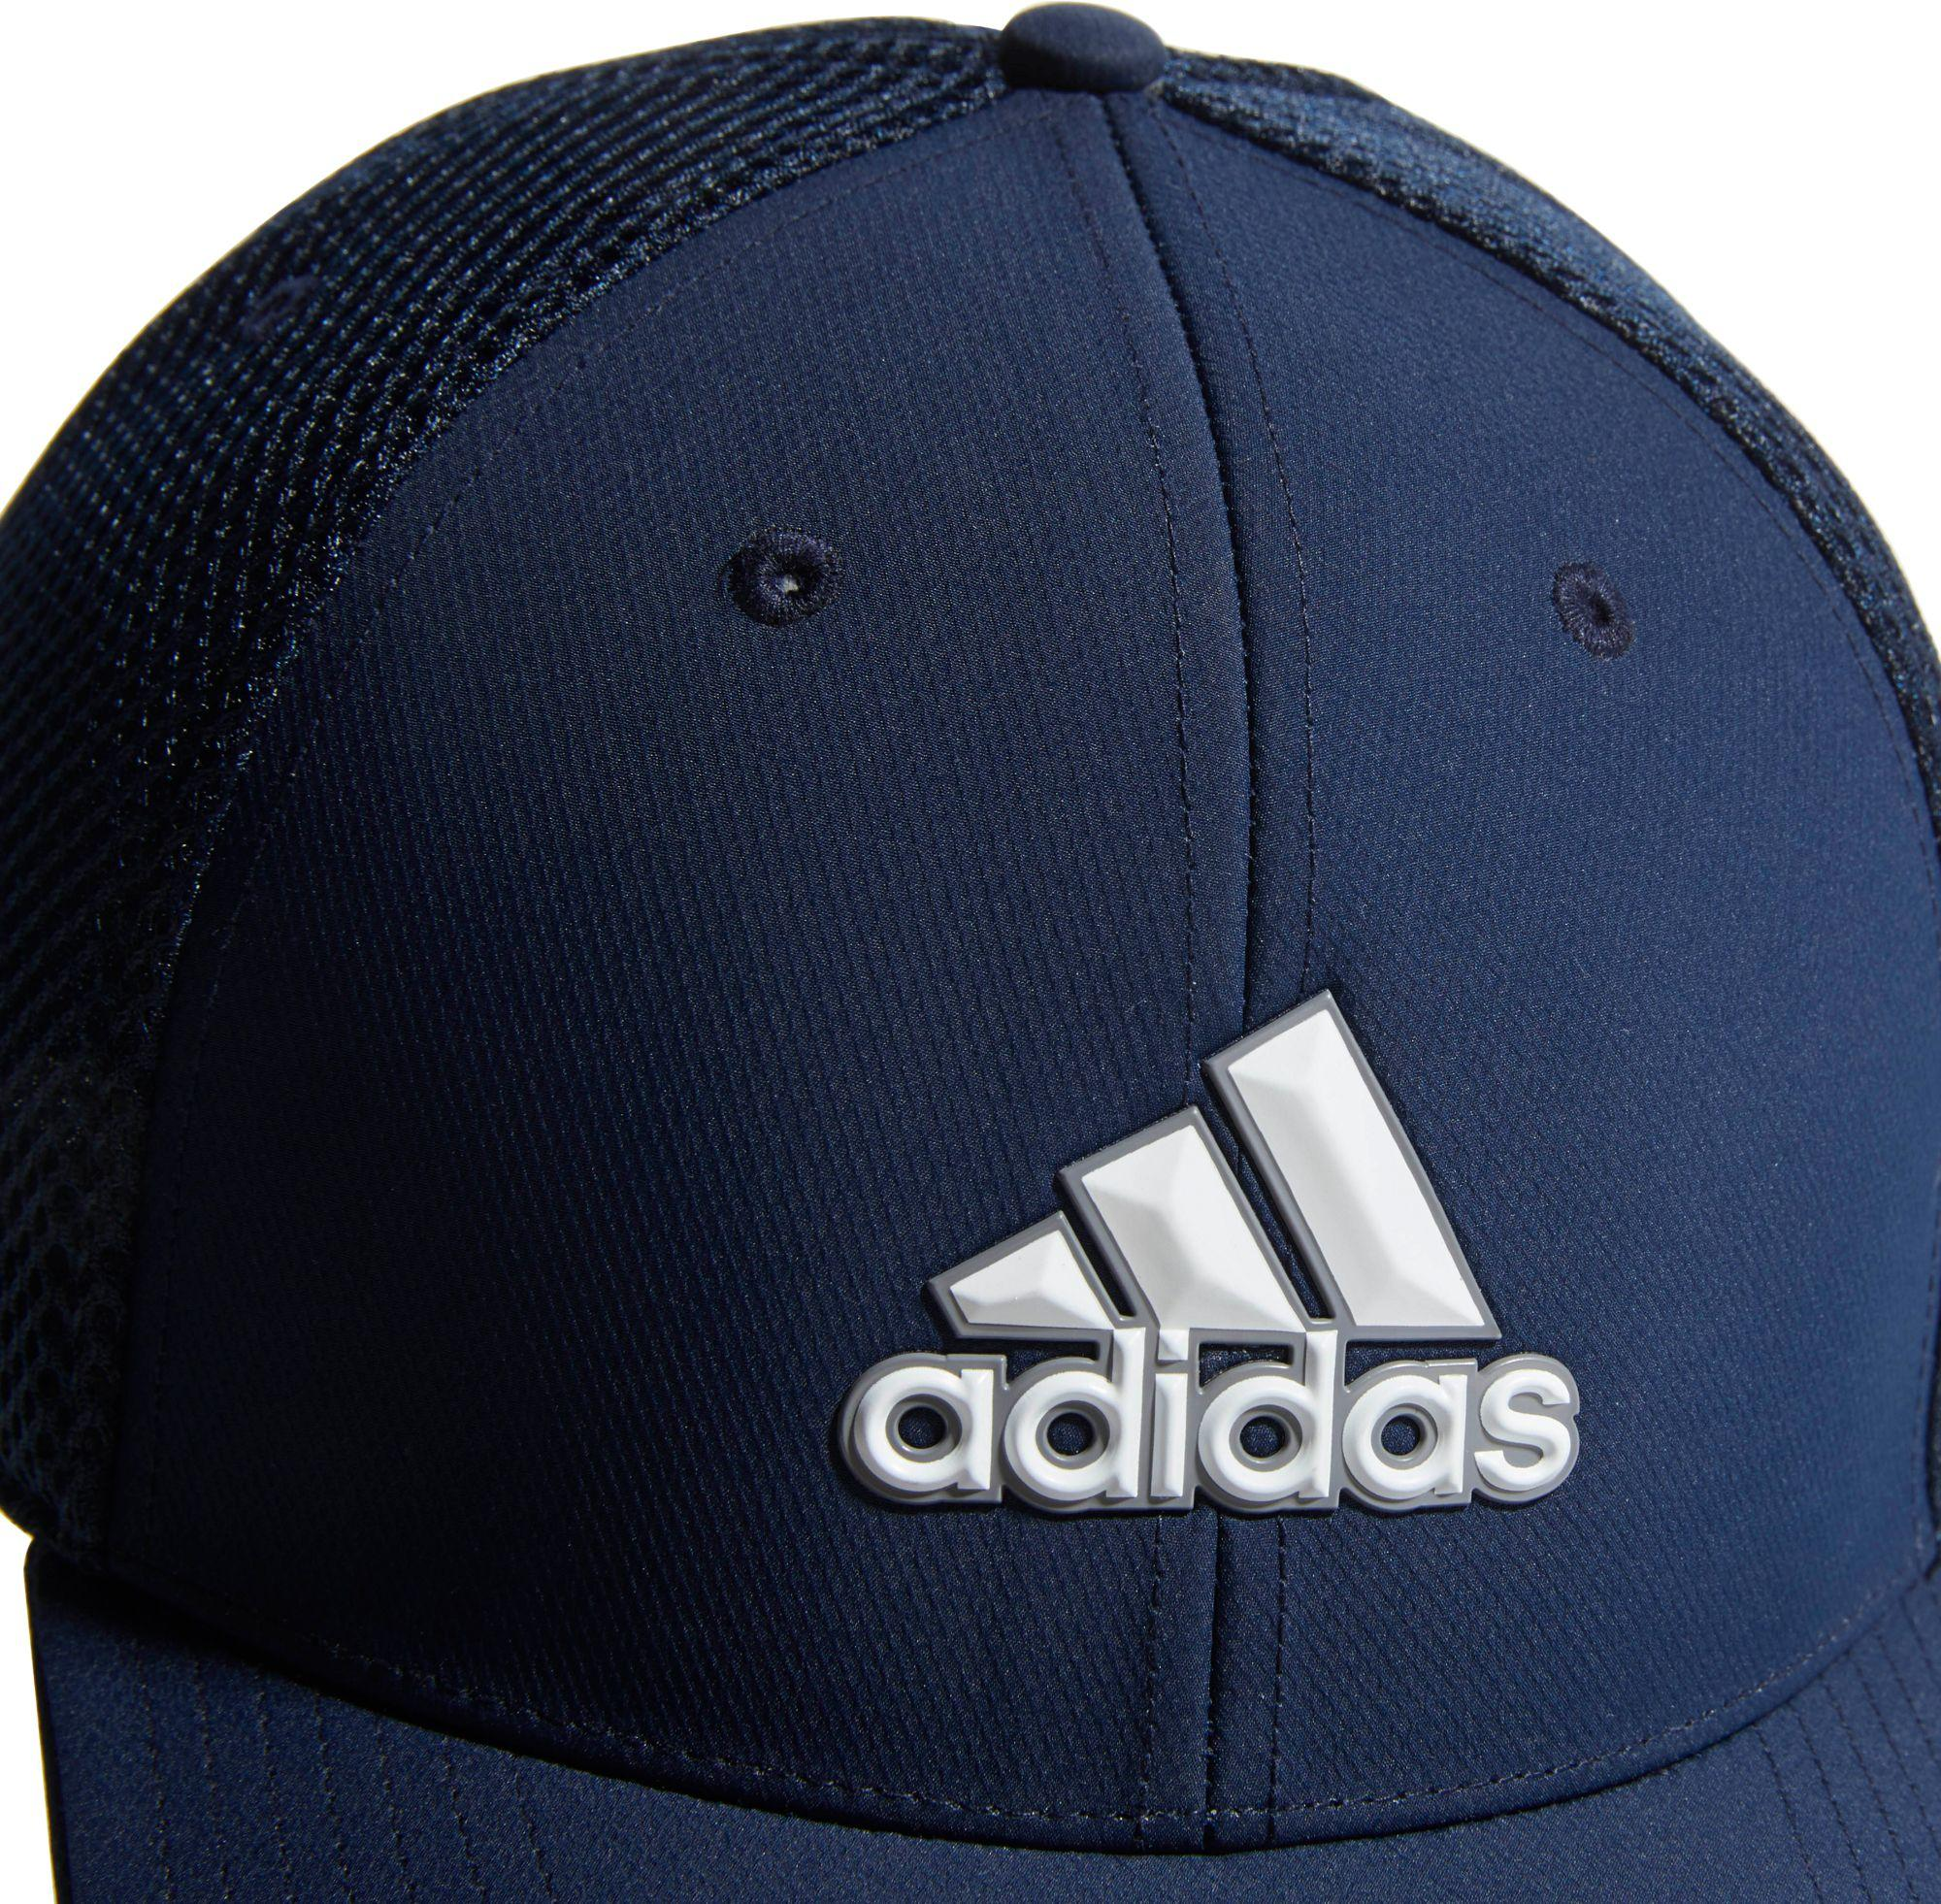 Adidas - Blue A-stretch Badge Of Sport Tour Golf Hat for Men - Lyst. View  fullscreen 432bfdbe7d82